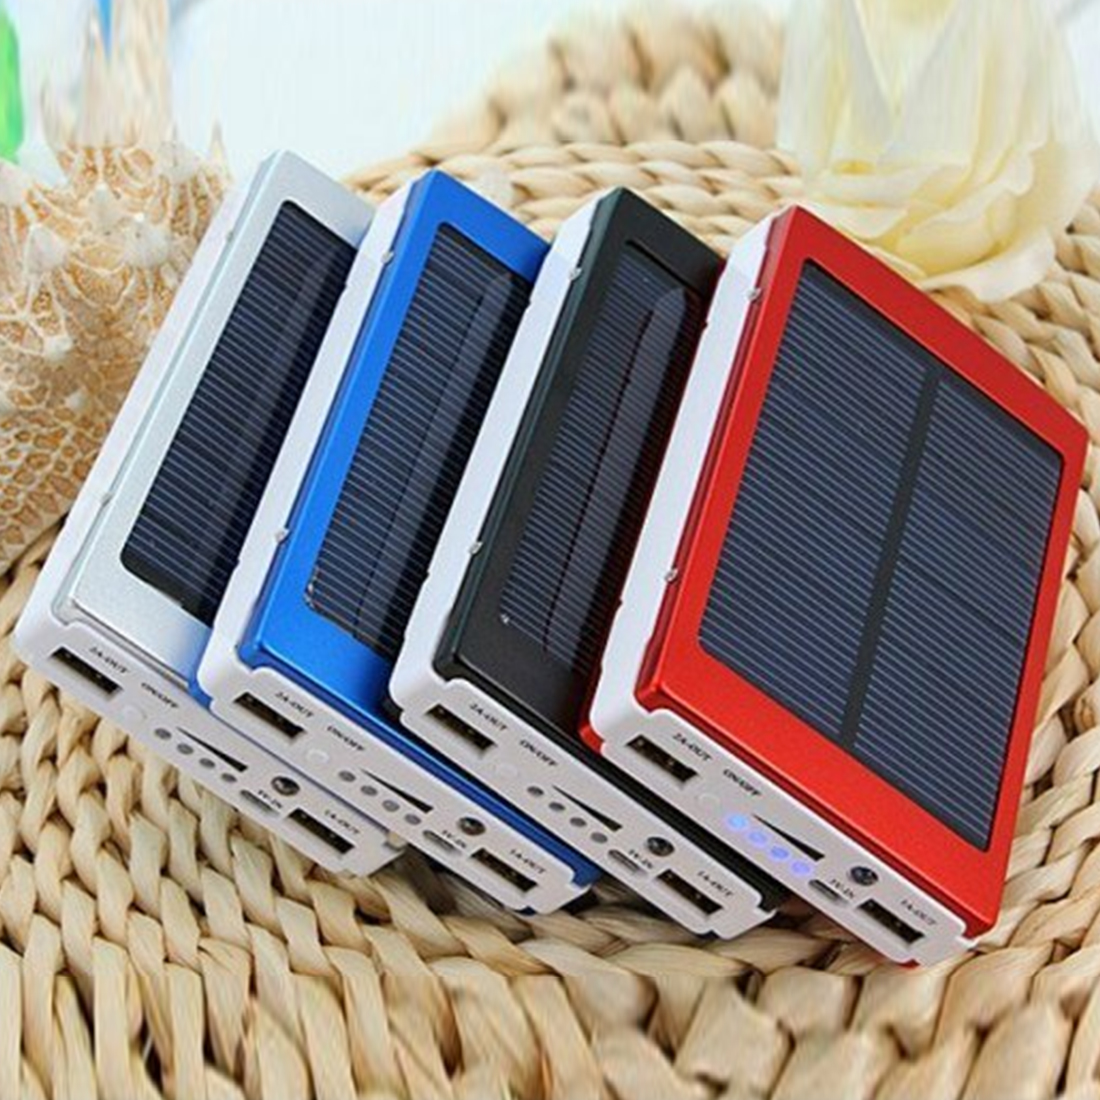 New 30000mAh Solar Battery Portable Charger Dual Output USB External Battery High Capacity Long Lasting for Mobile Phone Solar